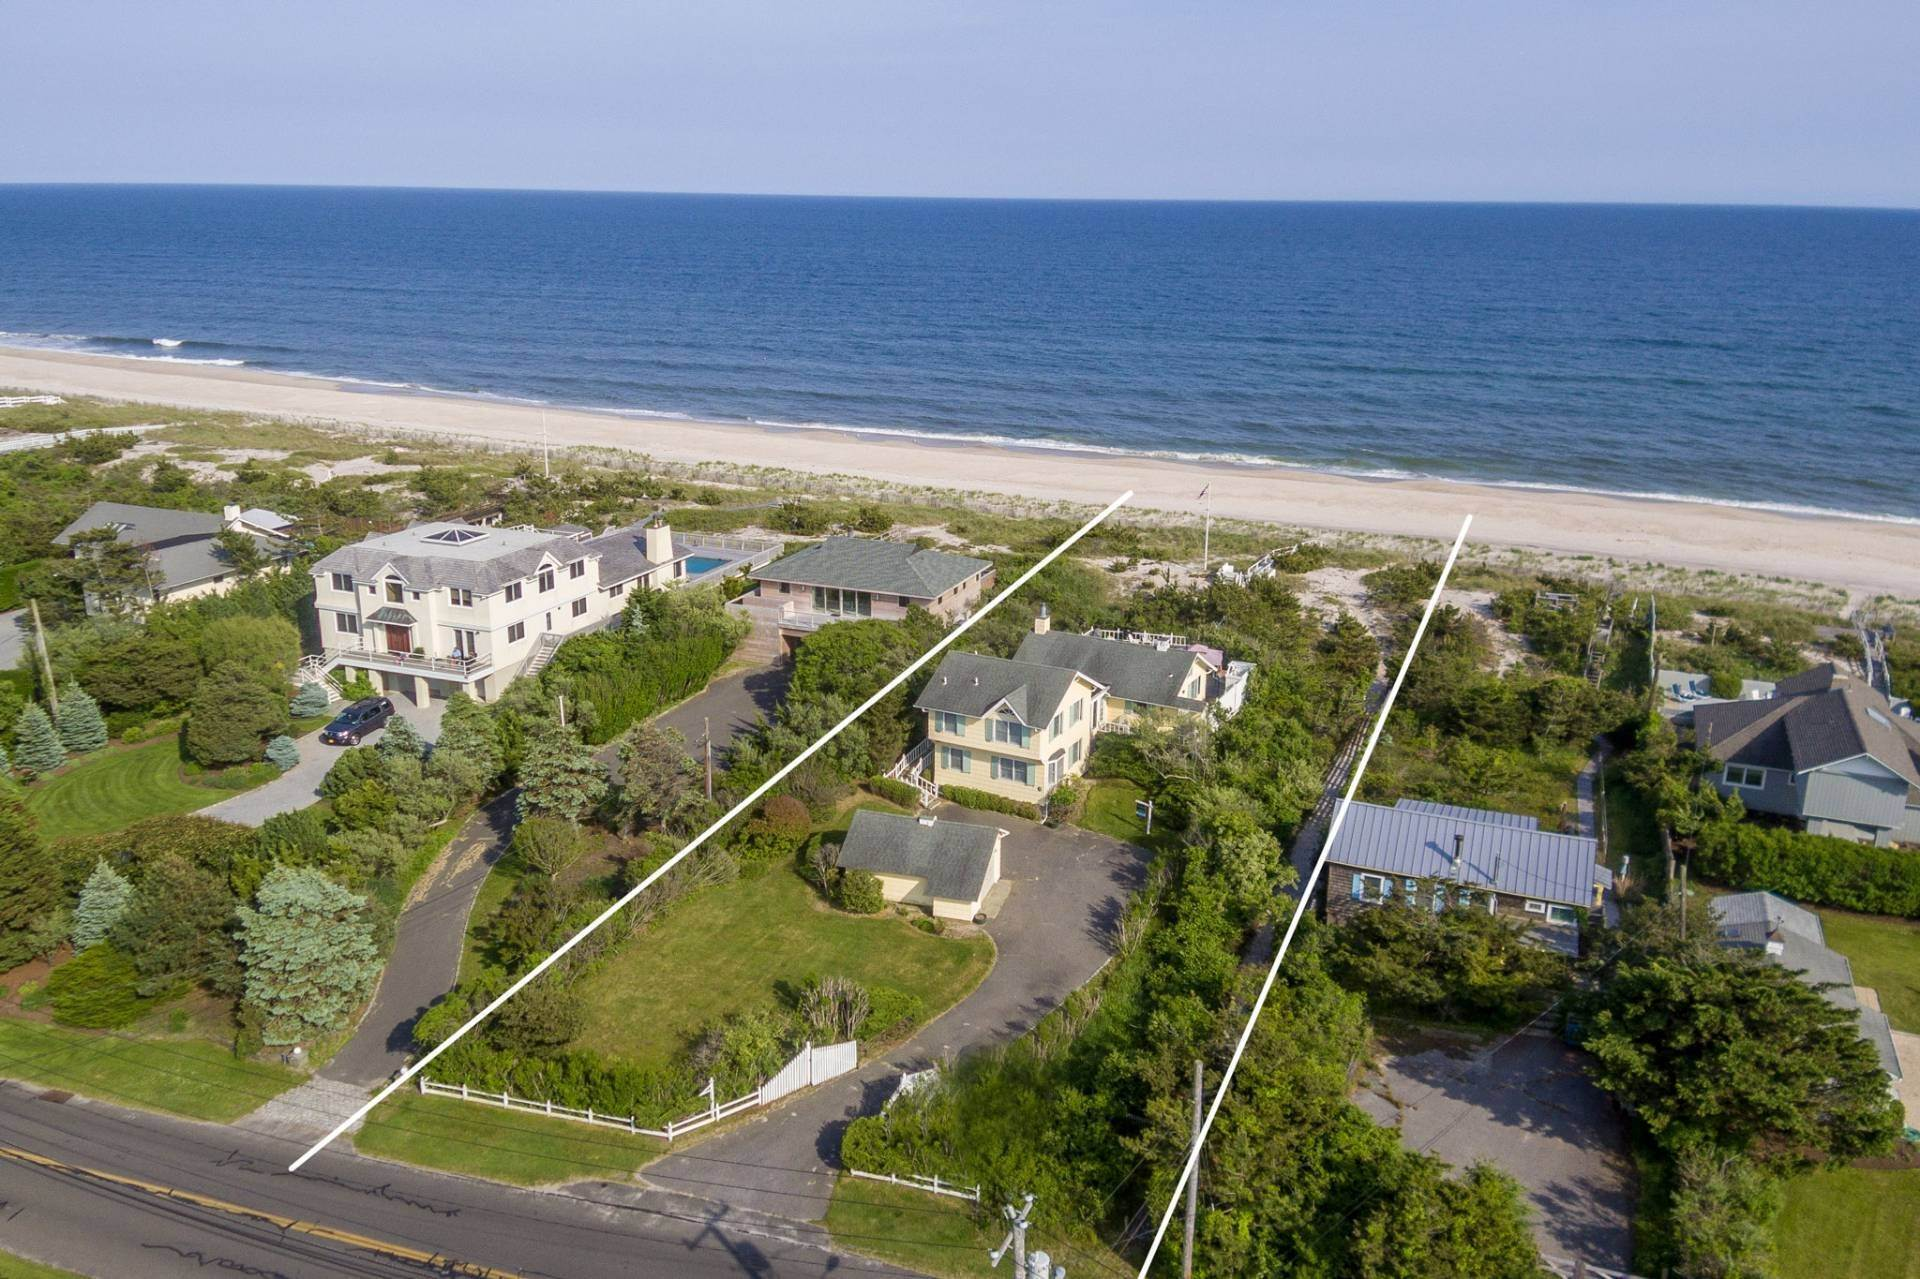 Single Family Homes for Sale at The Best Value On The Ocean In Quogue 96 And 98 Dune Road, Quogue Village, Southampton Town, NY 11978